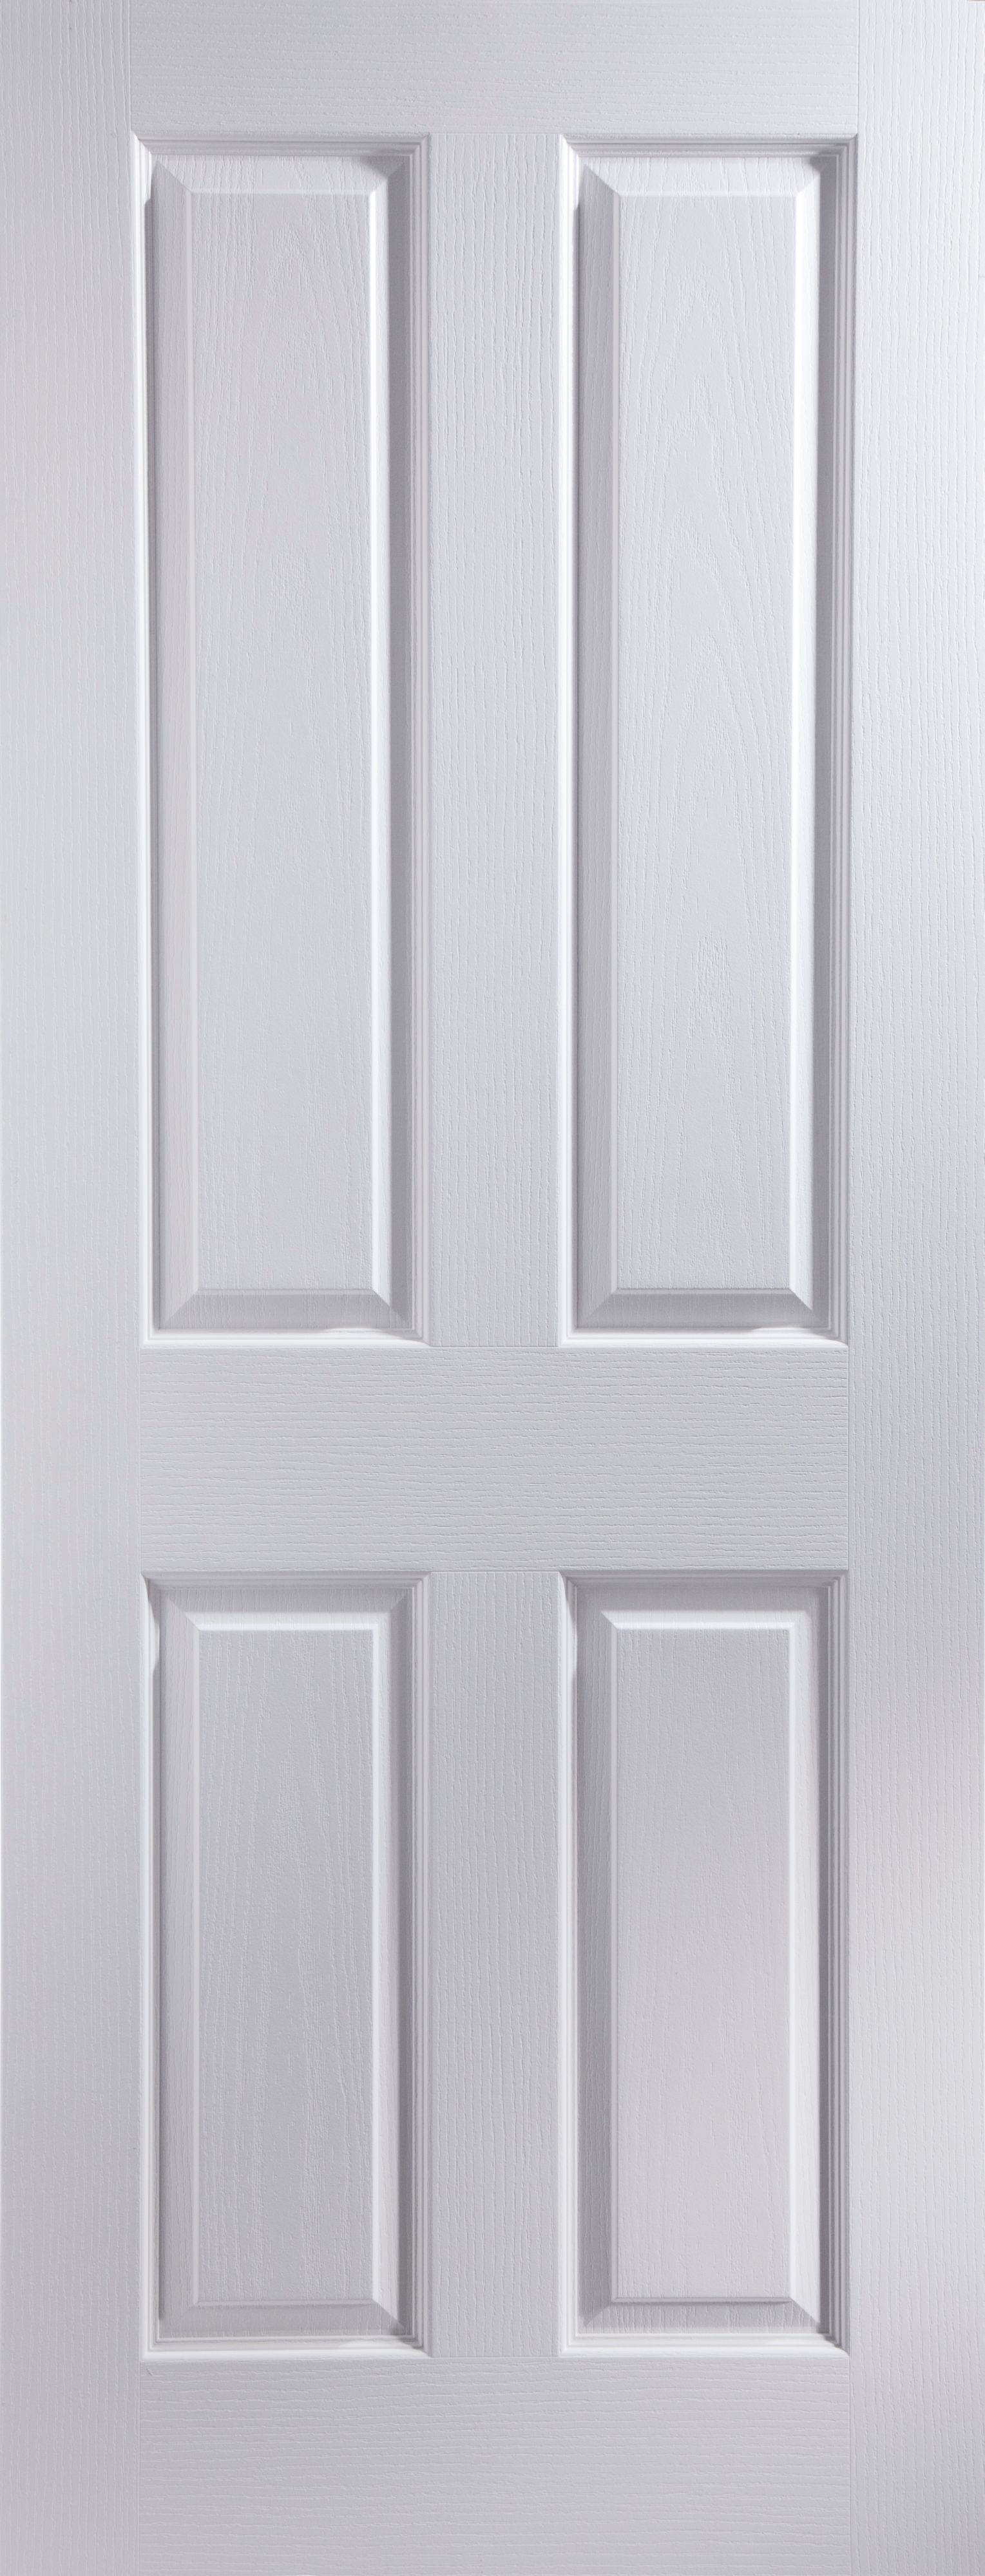 4 panel pre painted white woodgrain unglazed internal for Wood doors painted white